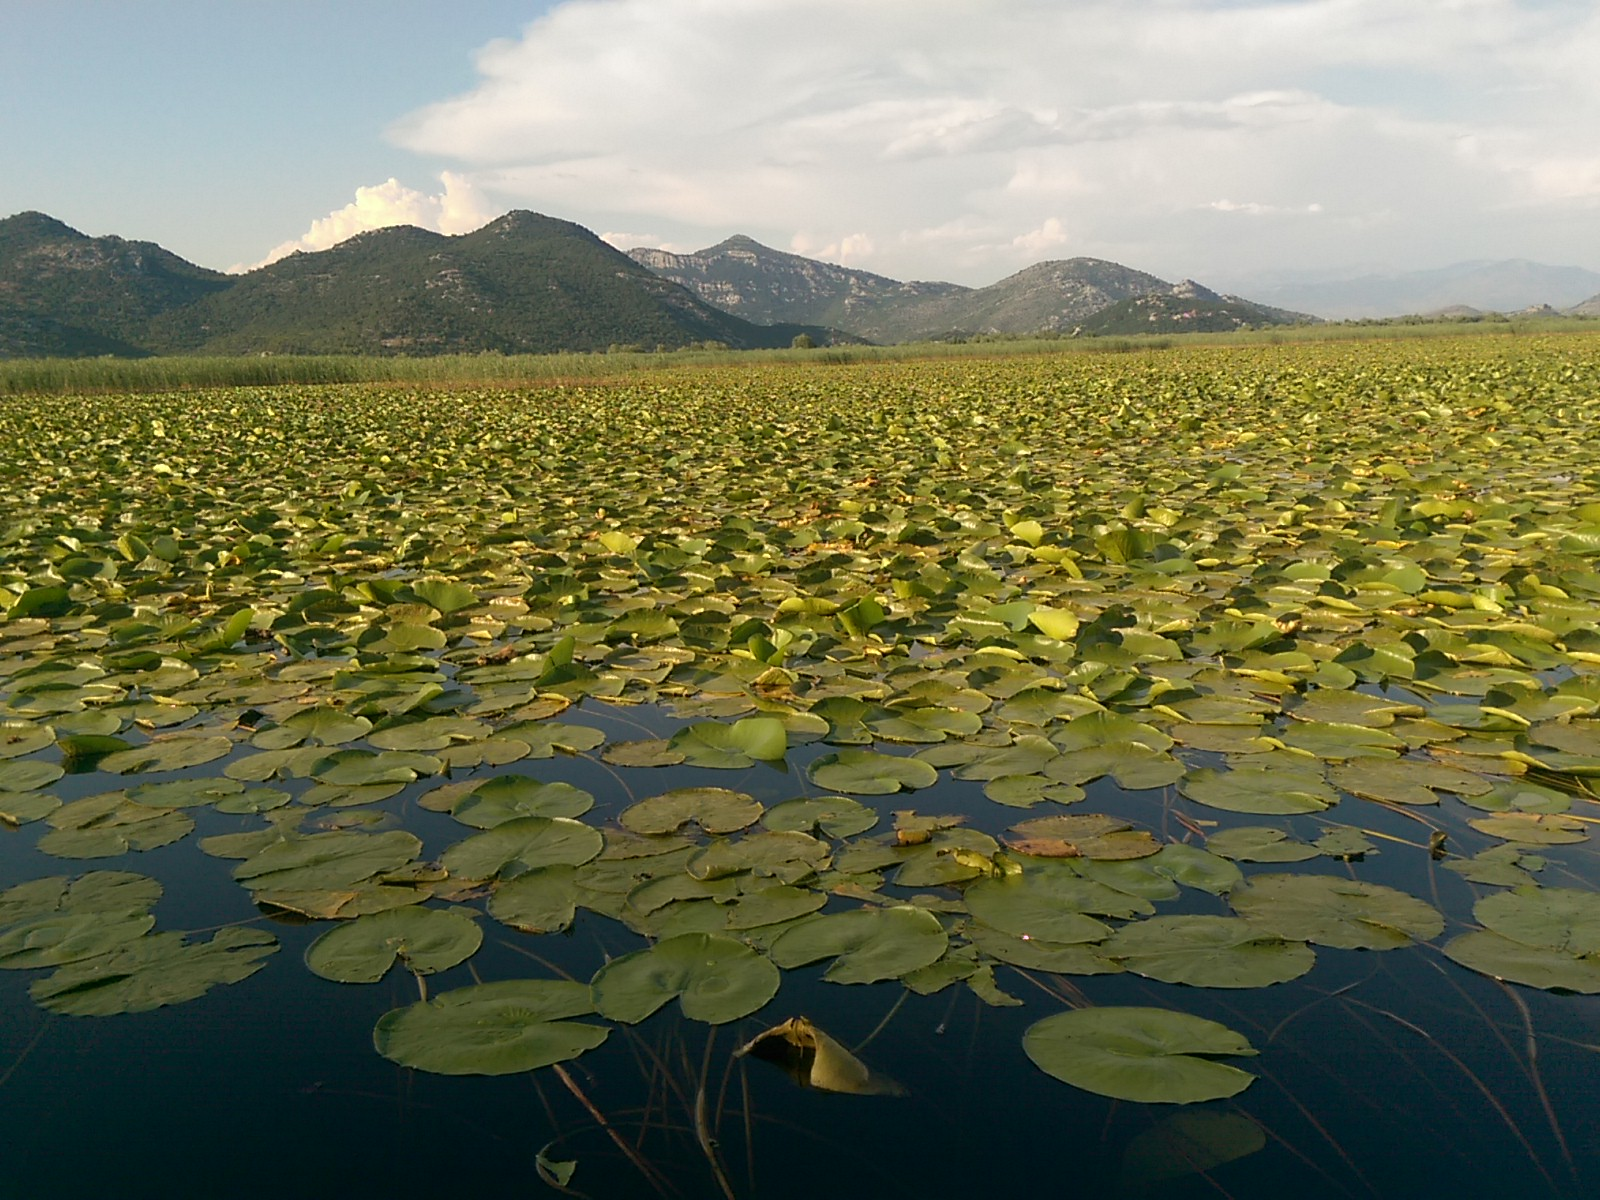 Flat glassy water is covered in green round leaves, with mountains in the distance